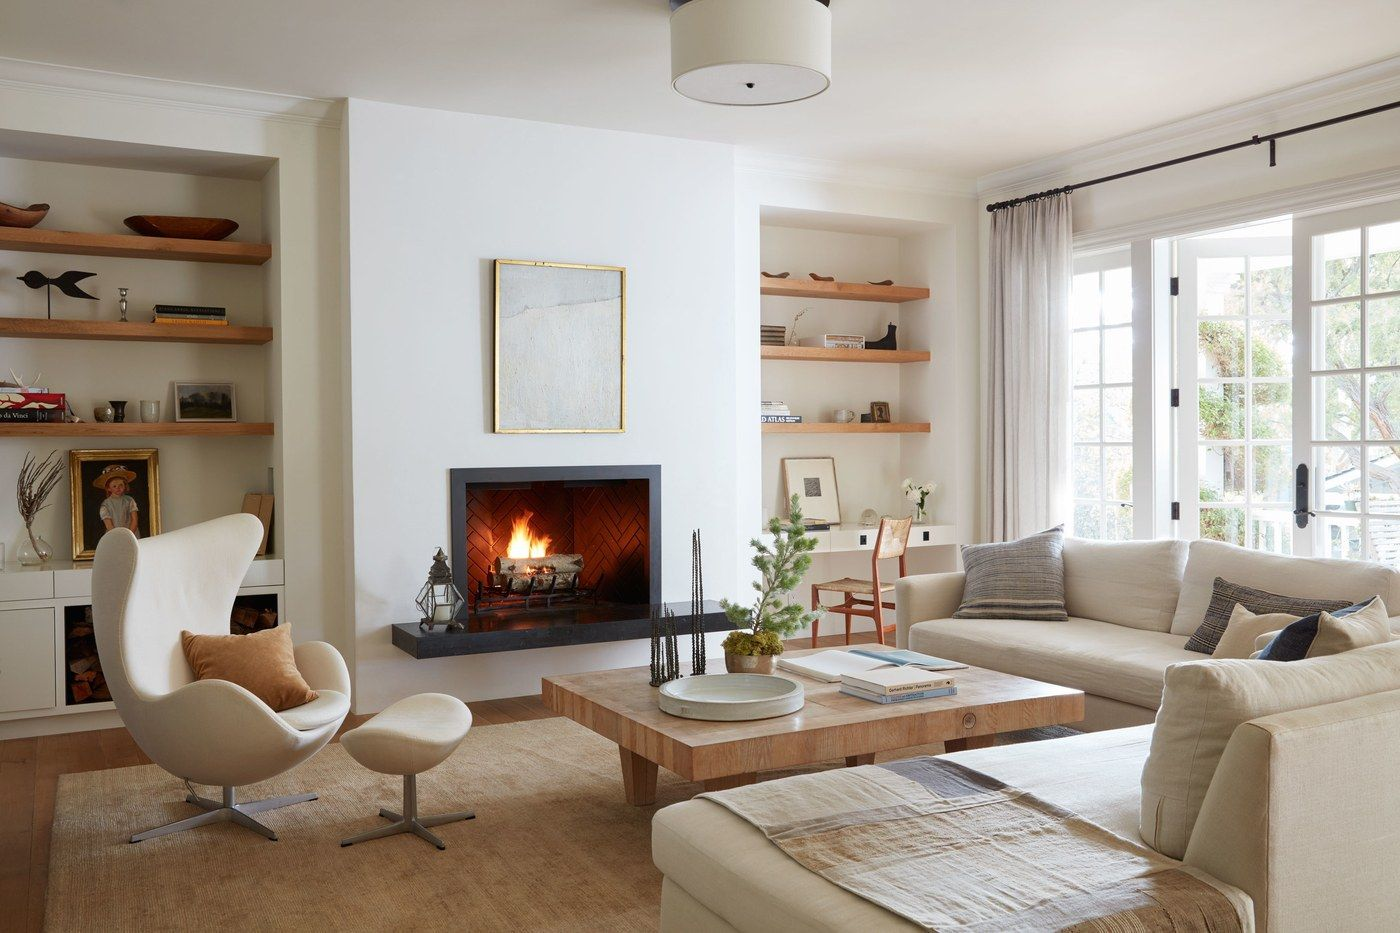 A Brentwood Home — A Note on Style